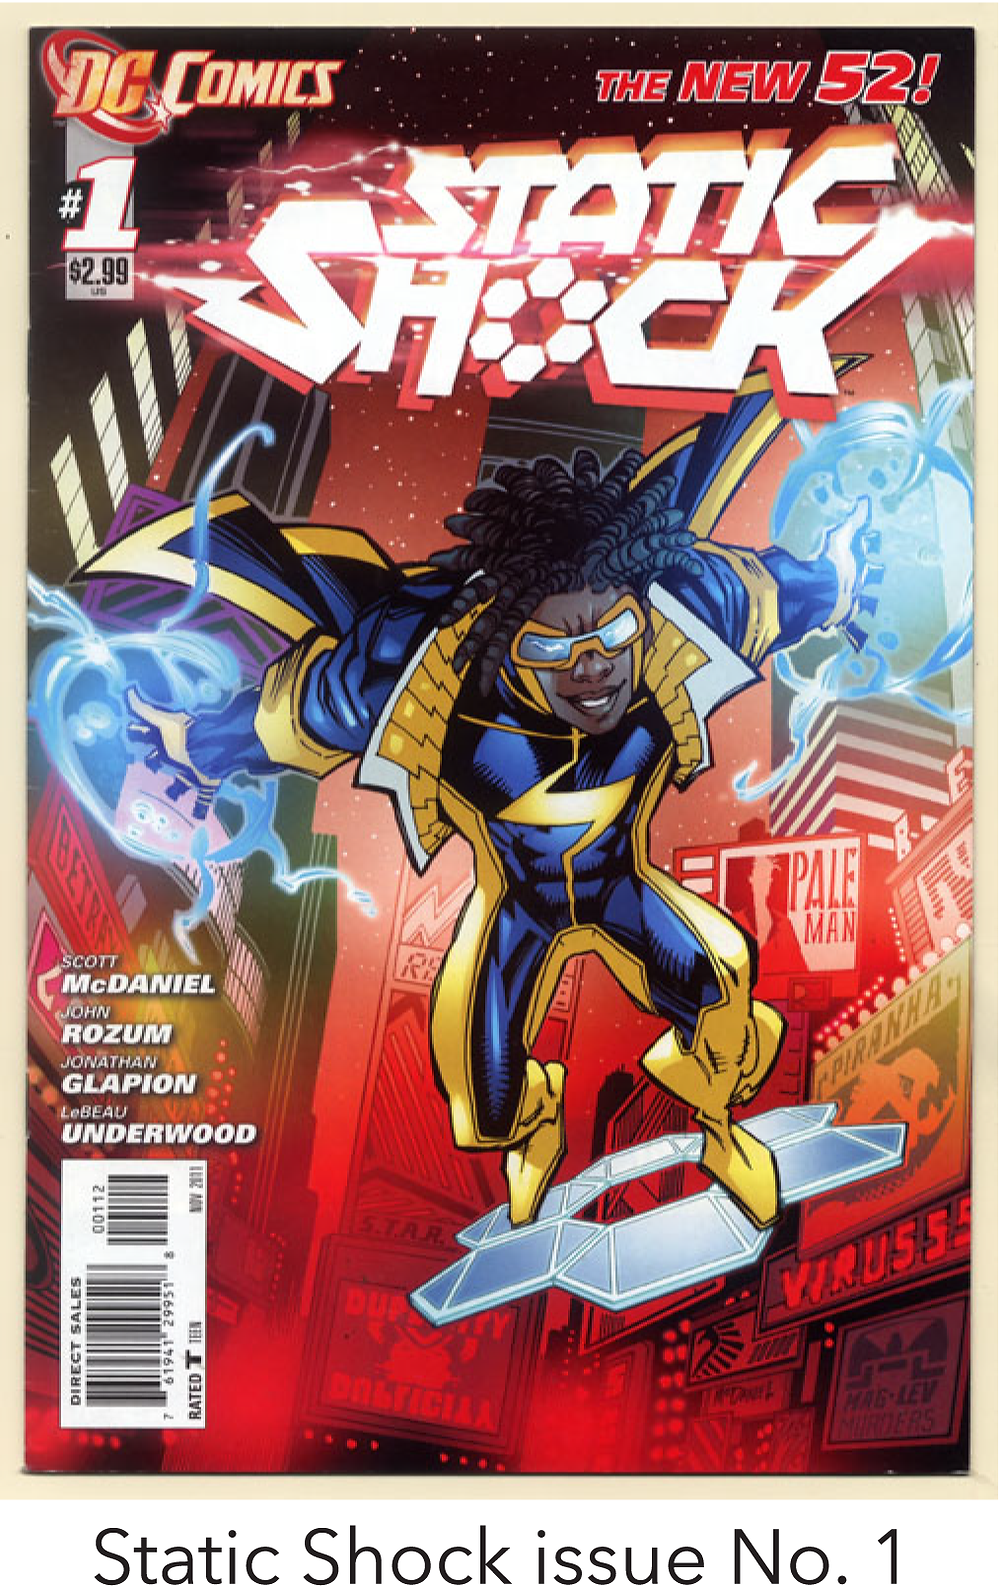 Static Shock issue No. 1